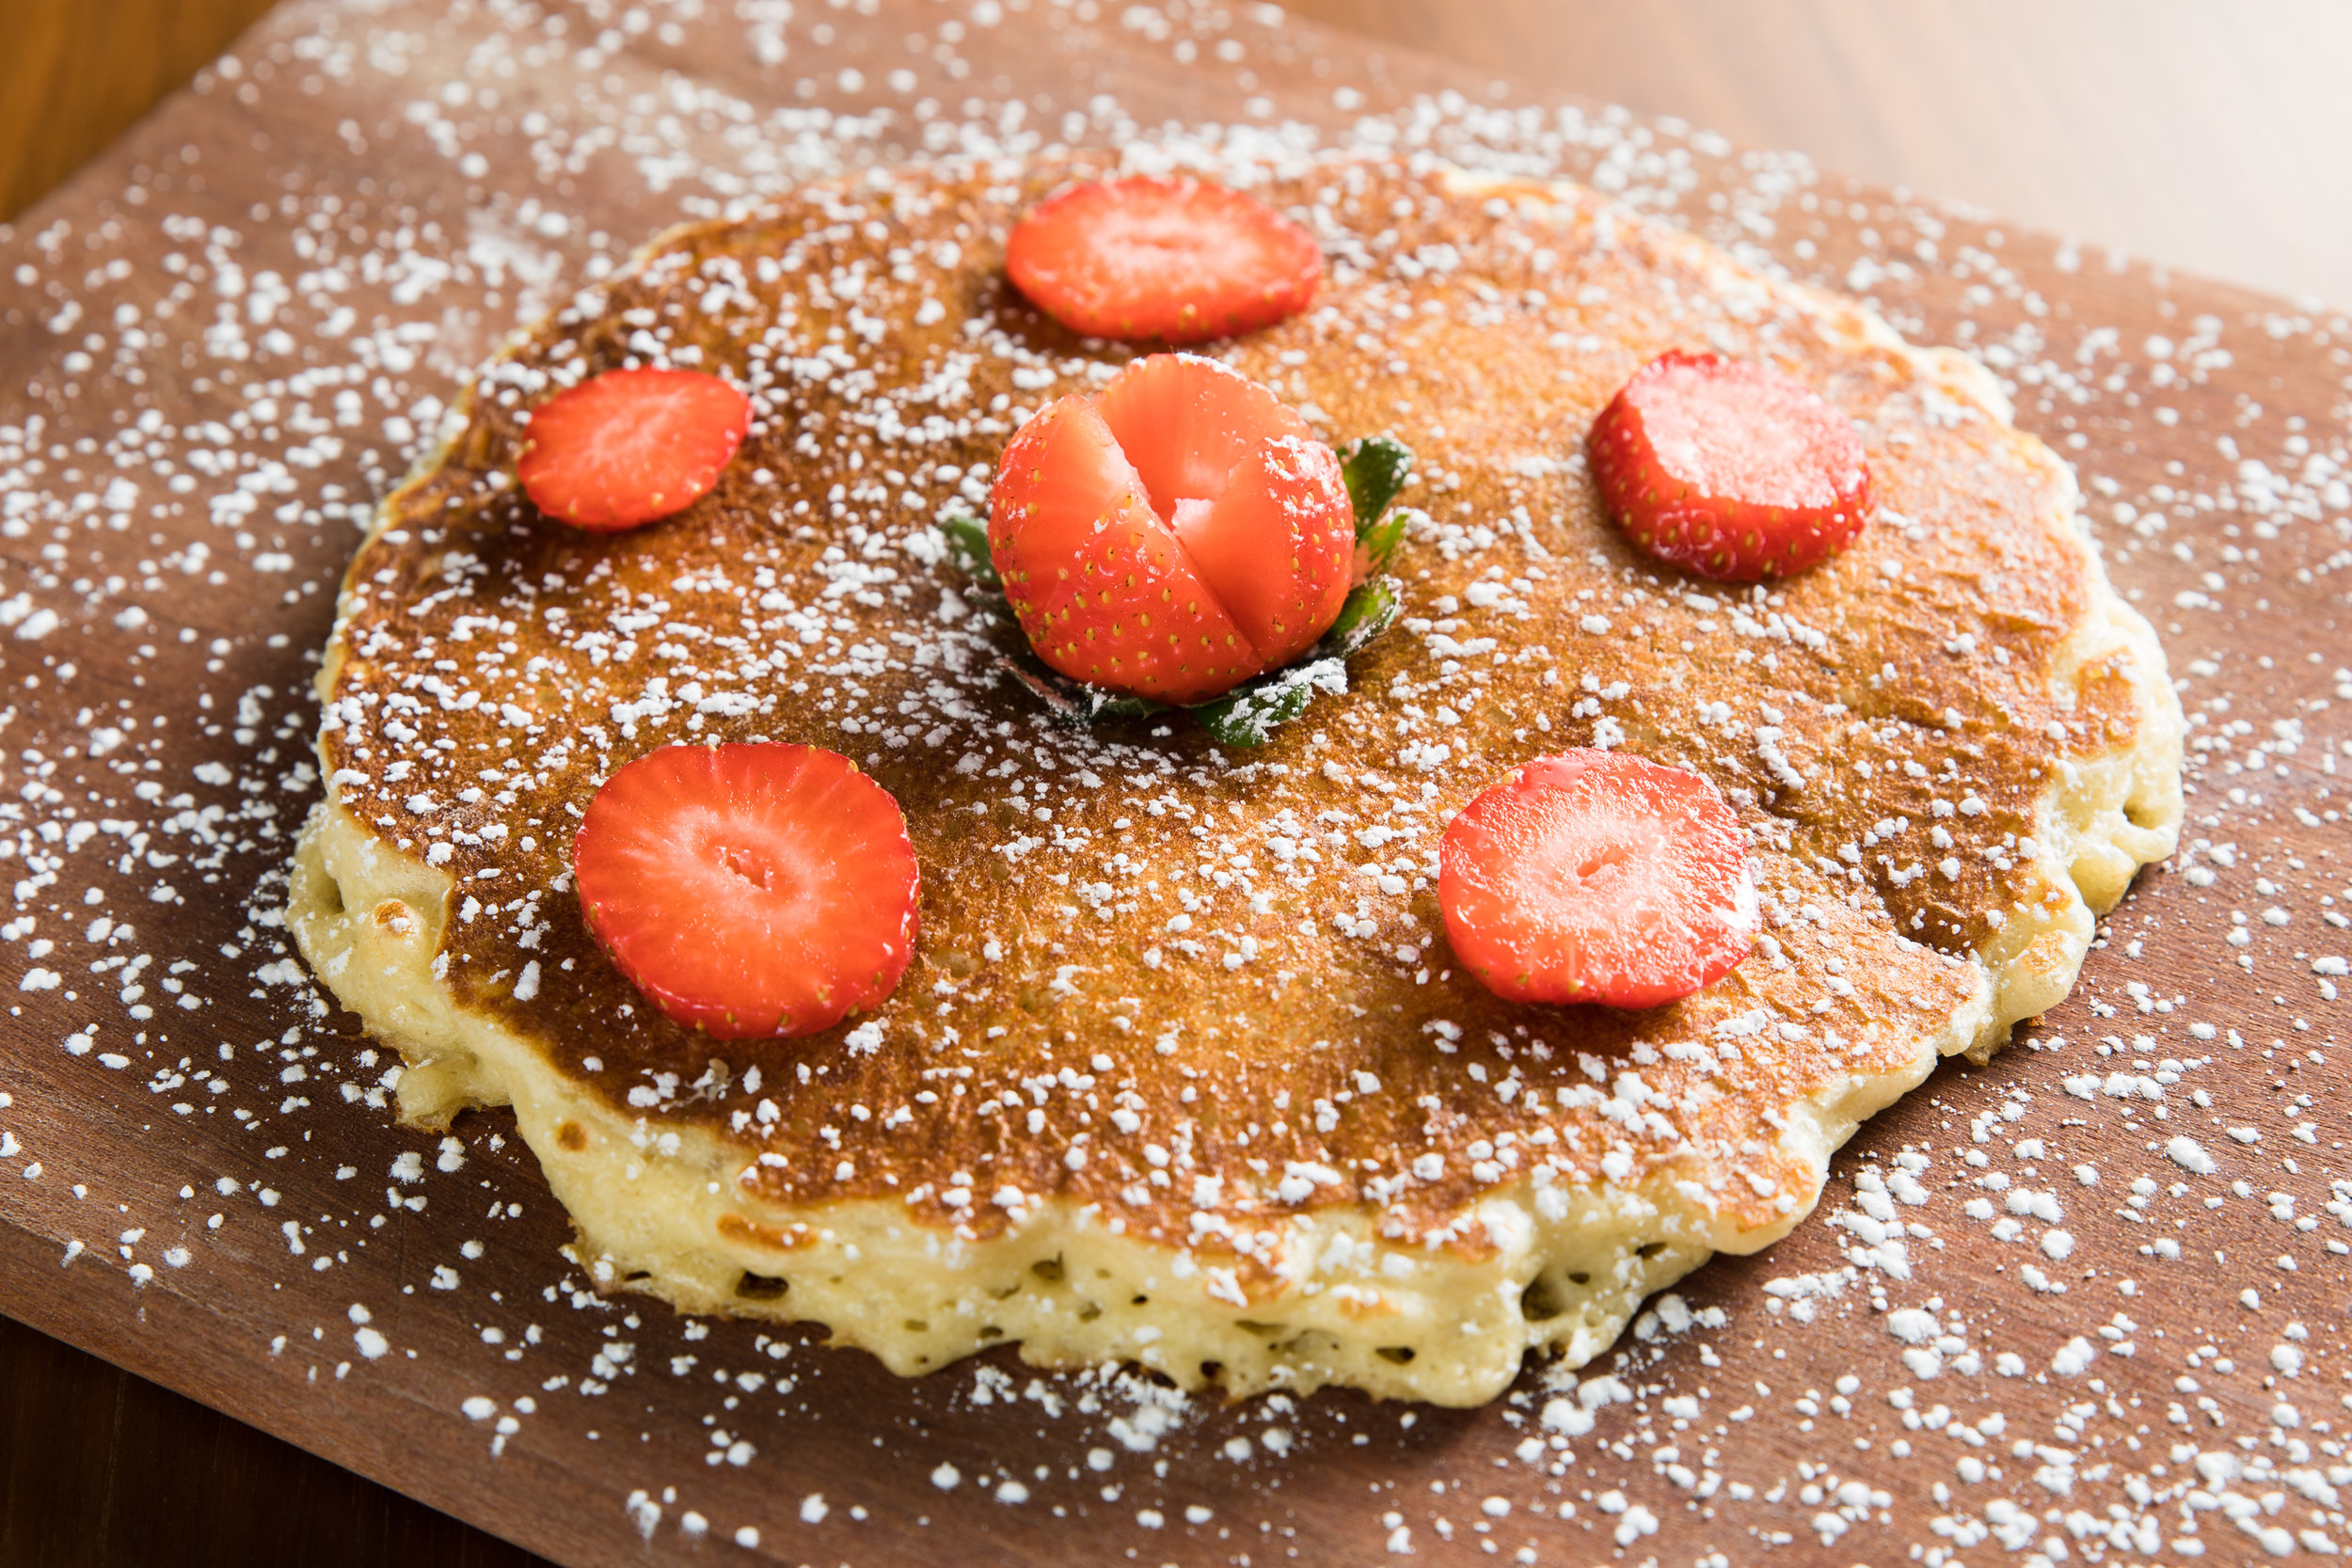 Buttermilk Pancake topped with Strawberries